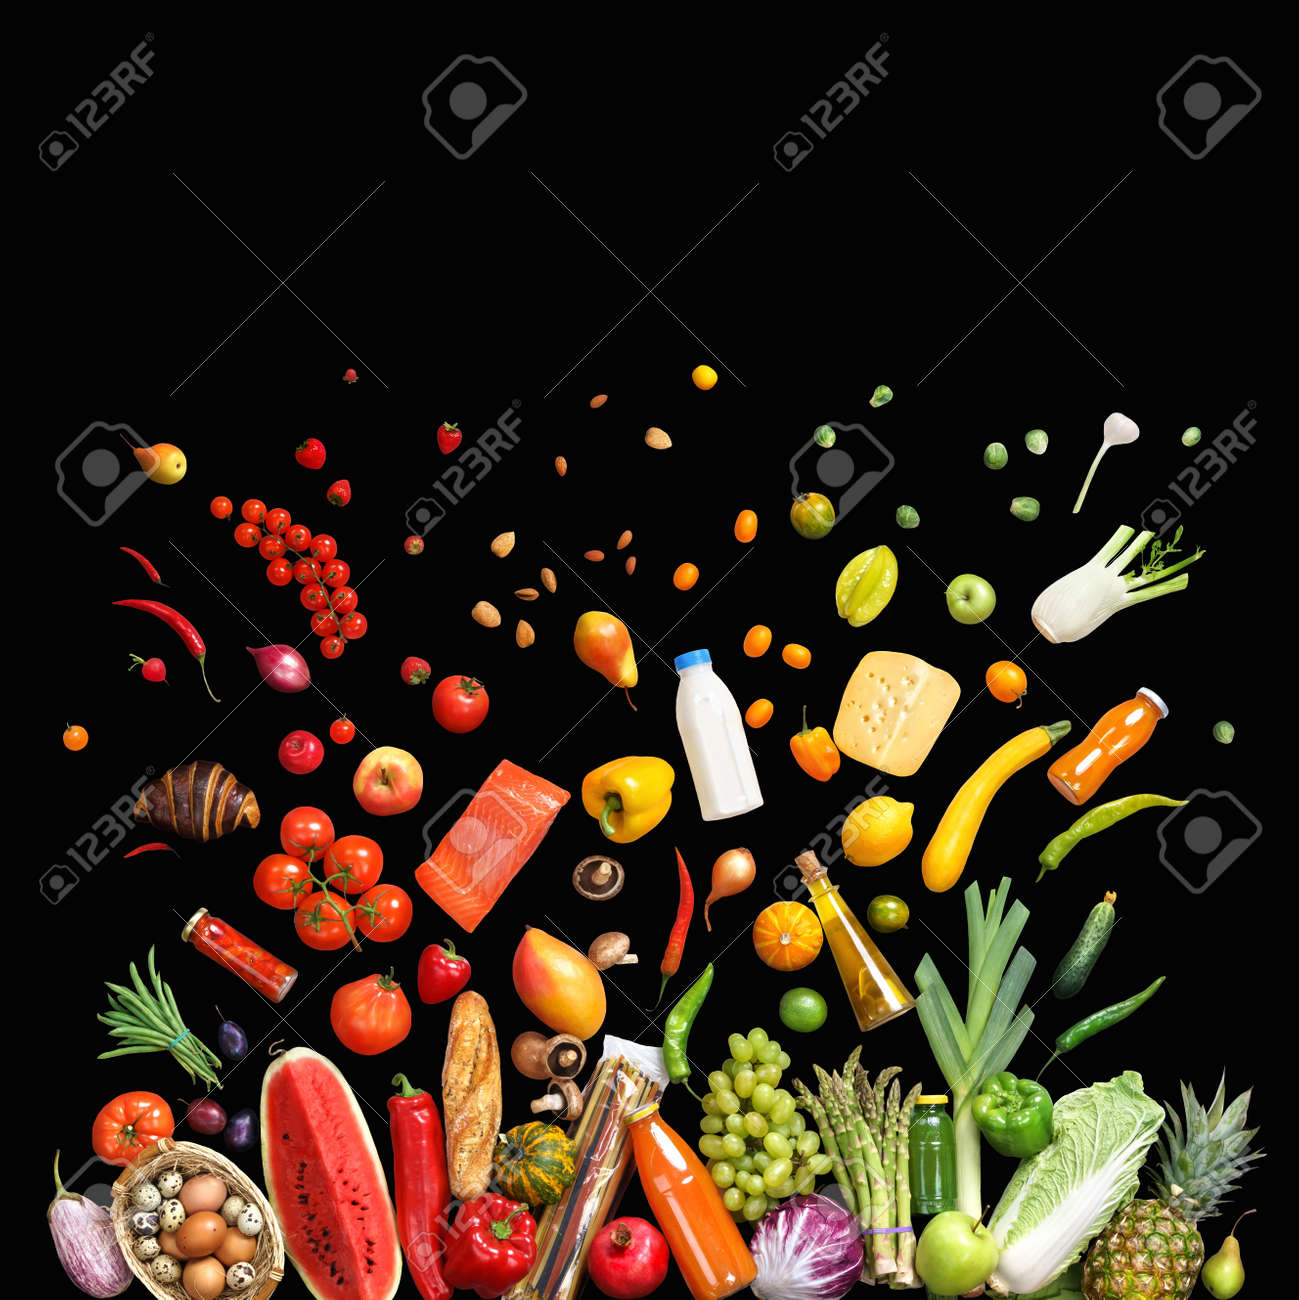 Food background studio photo of different fruits and vegetables - Deluxe Food Background Studio Photo Of Different Fruits And Vegetables Isolated On Black Background